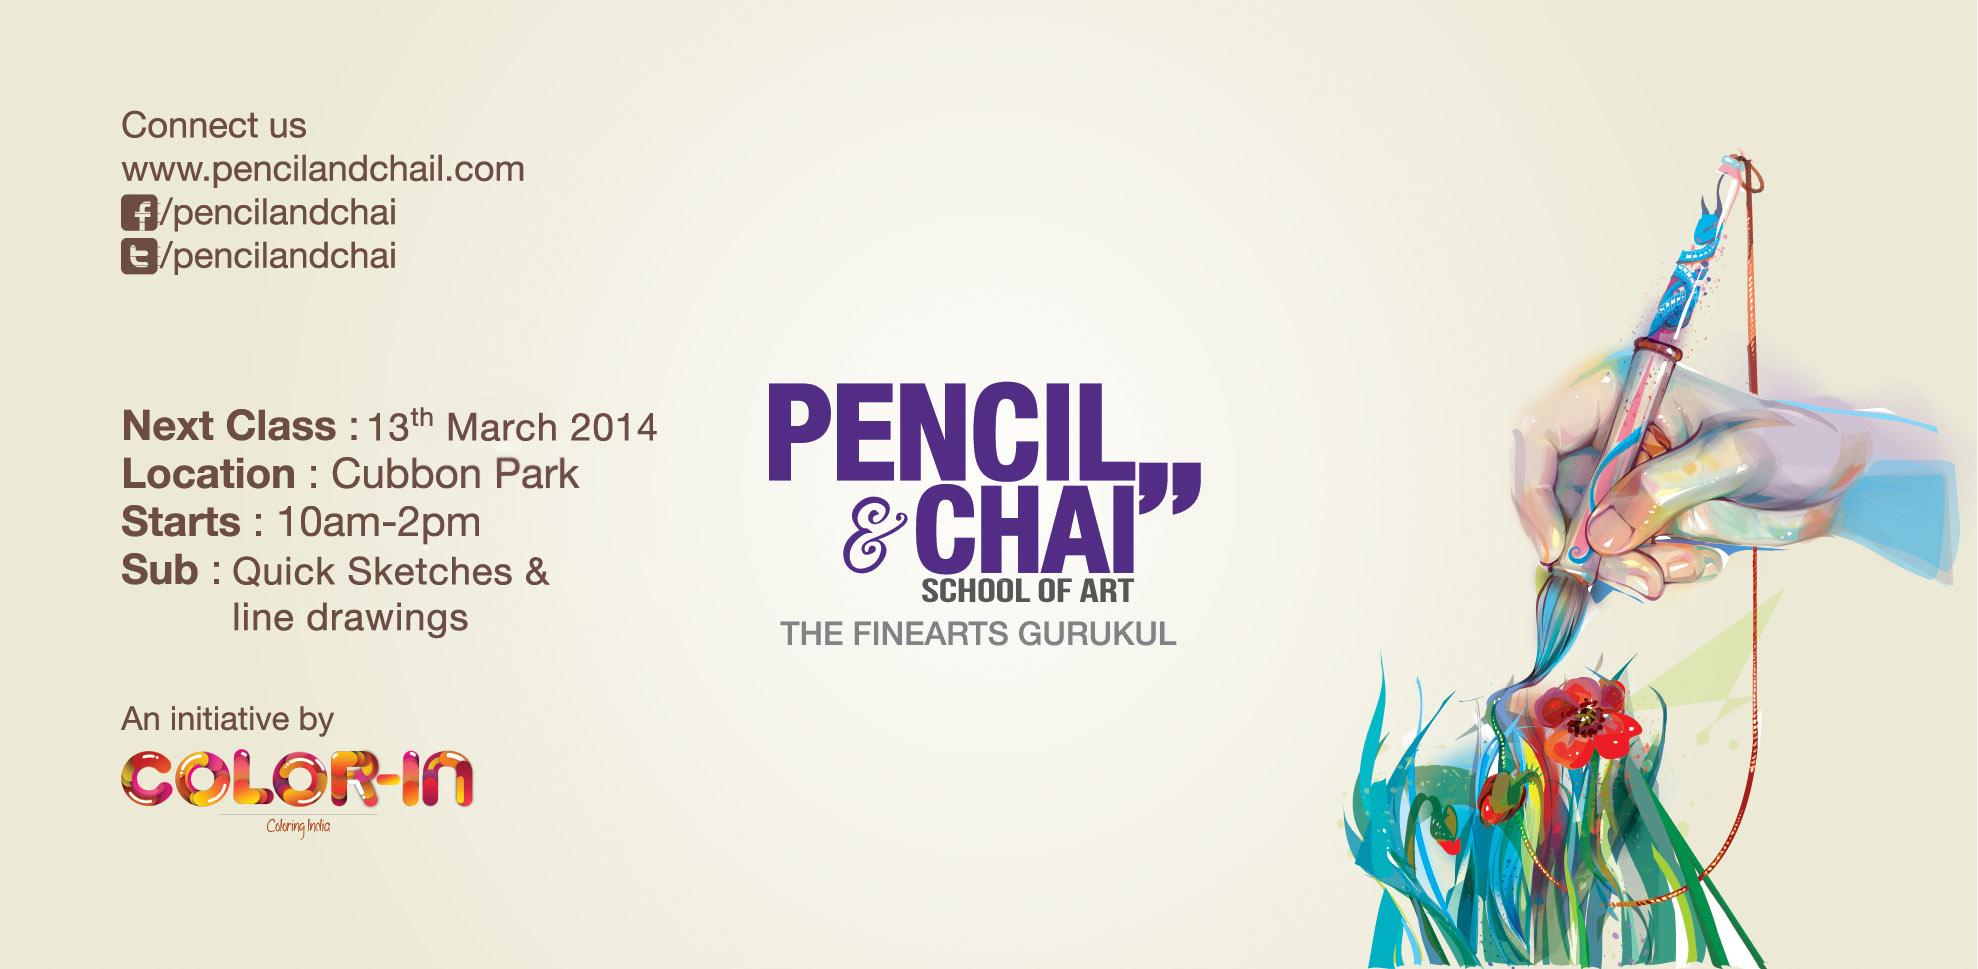 45th session | Pencil and chai 45th session | Pencil and chai 45th session1